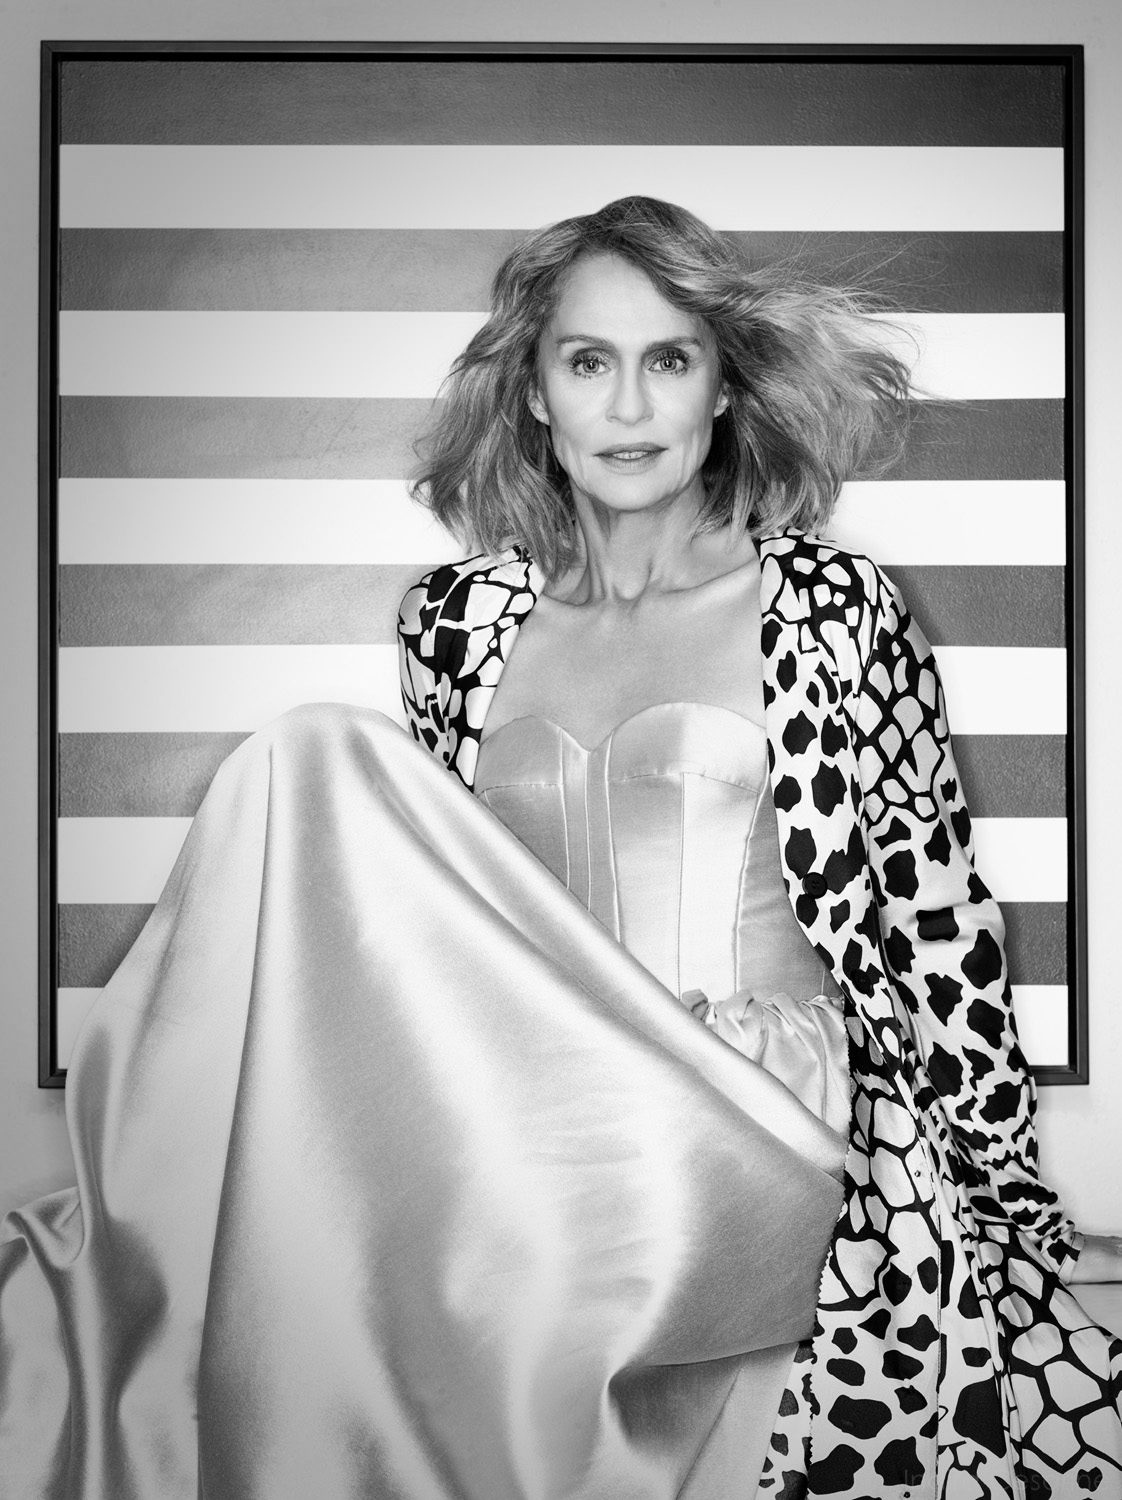 Lauren-Hutton-Photography-by-Indira-Cesarine-004-bw.jpg